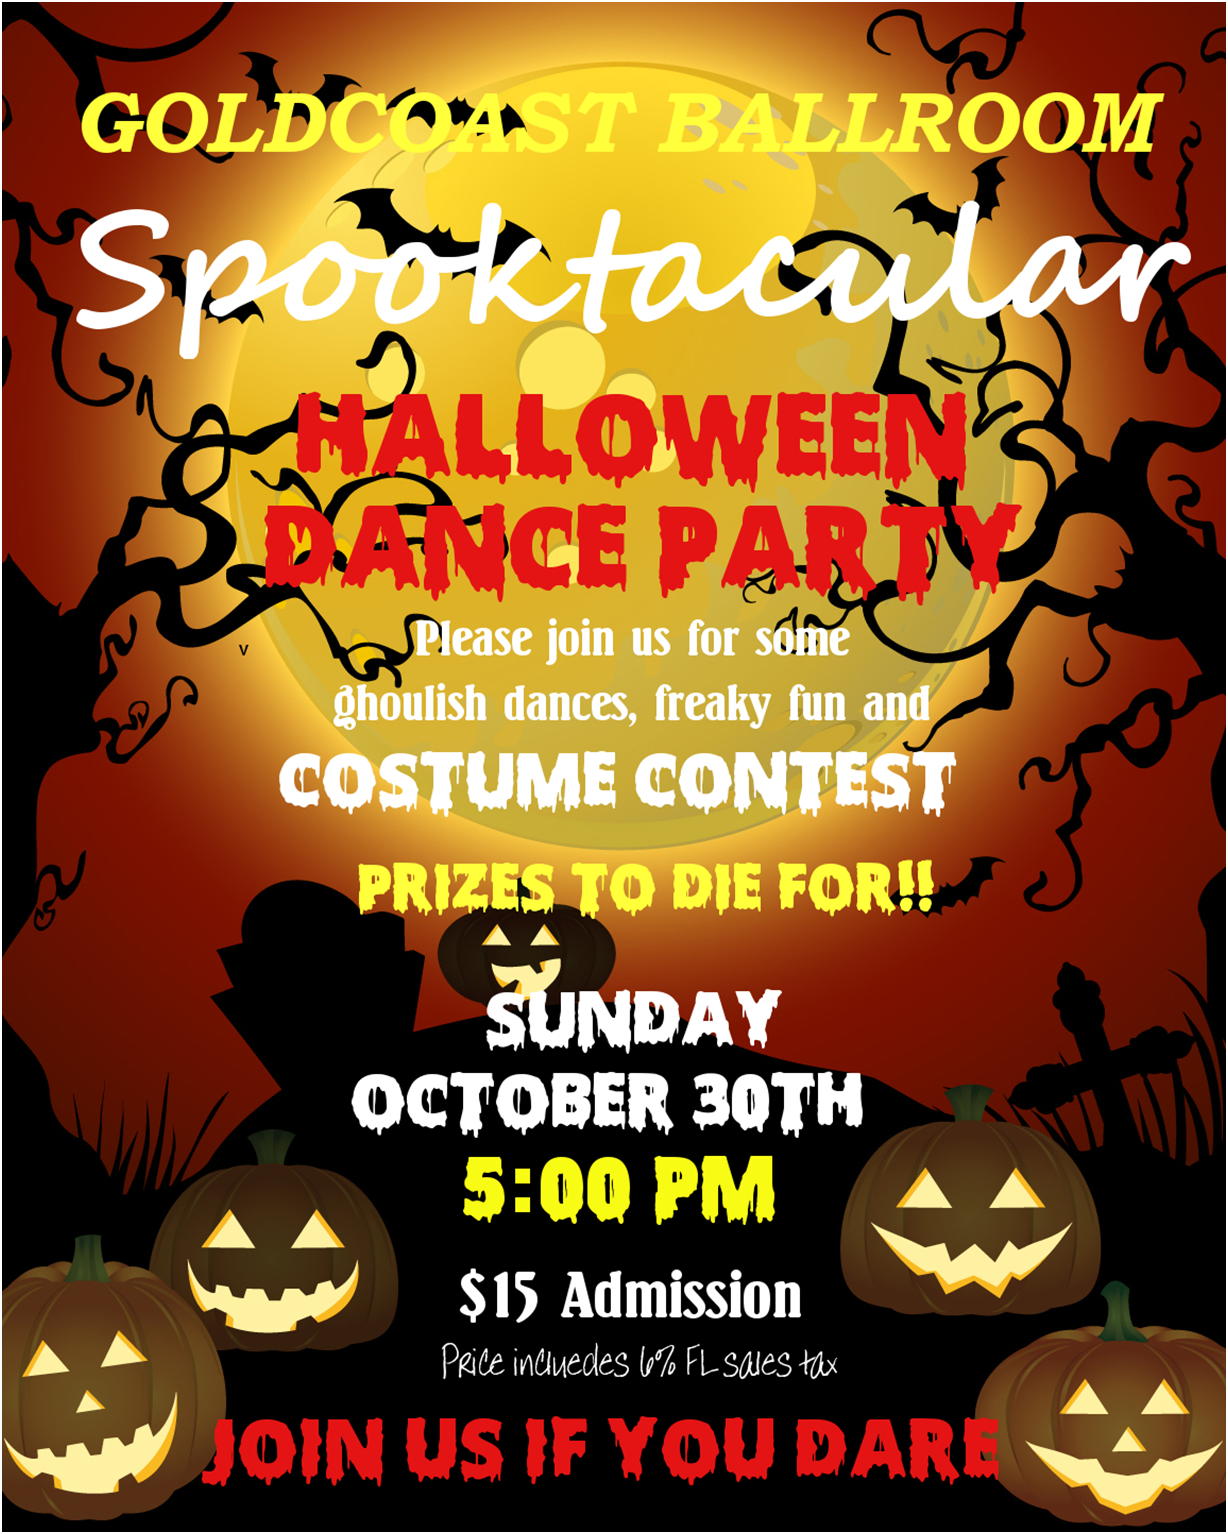 Halloween Party Costume Contest - October 30, 2016